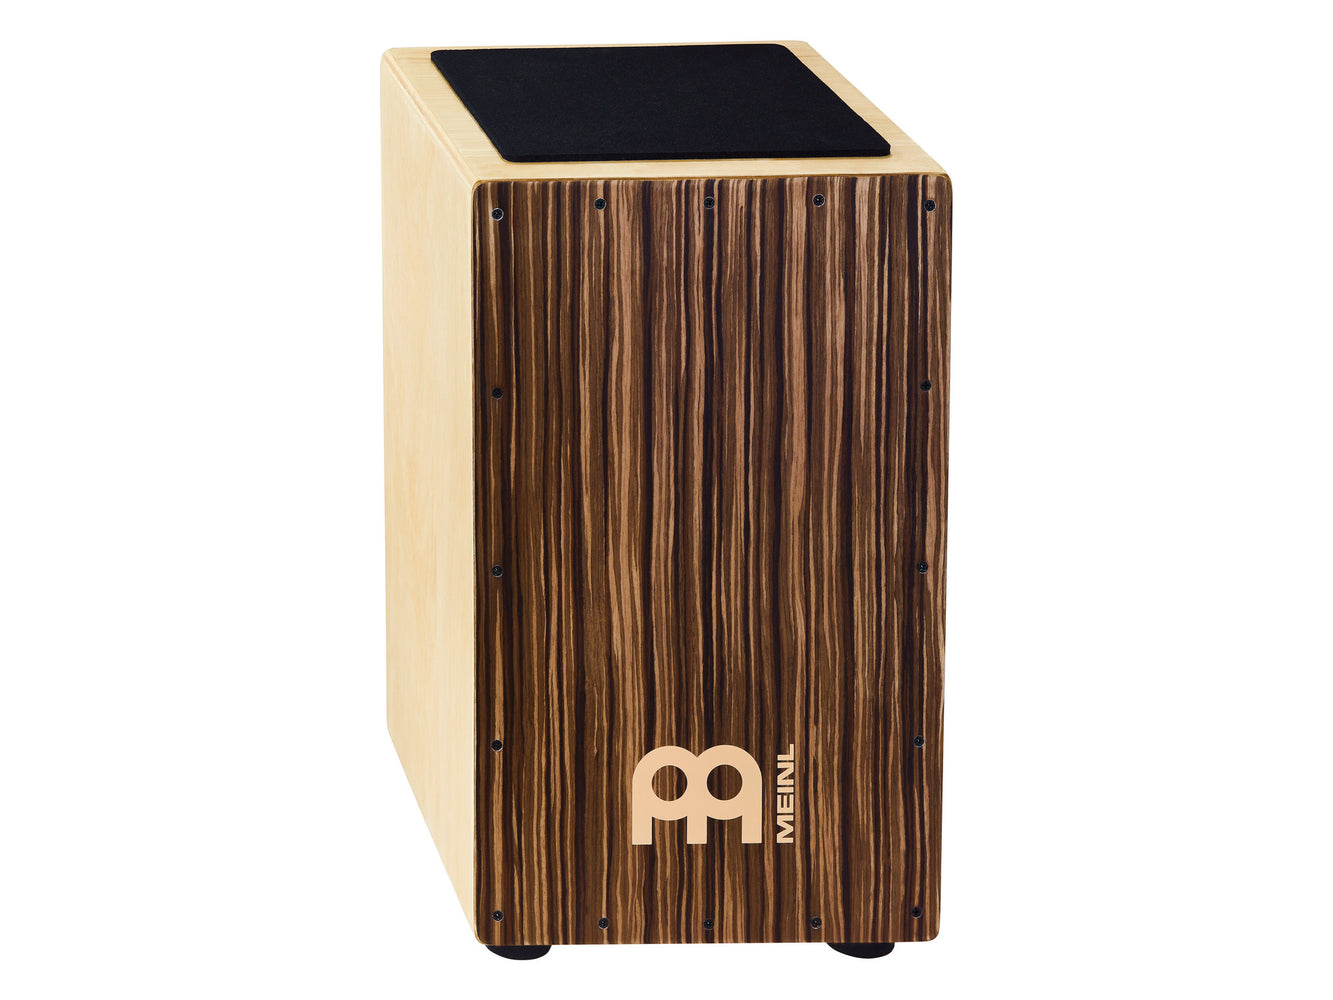 Traditional String Cajon, Striped Umber Frontplate